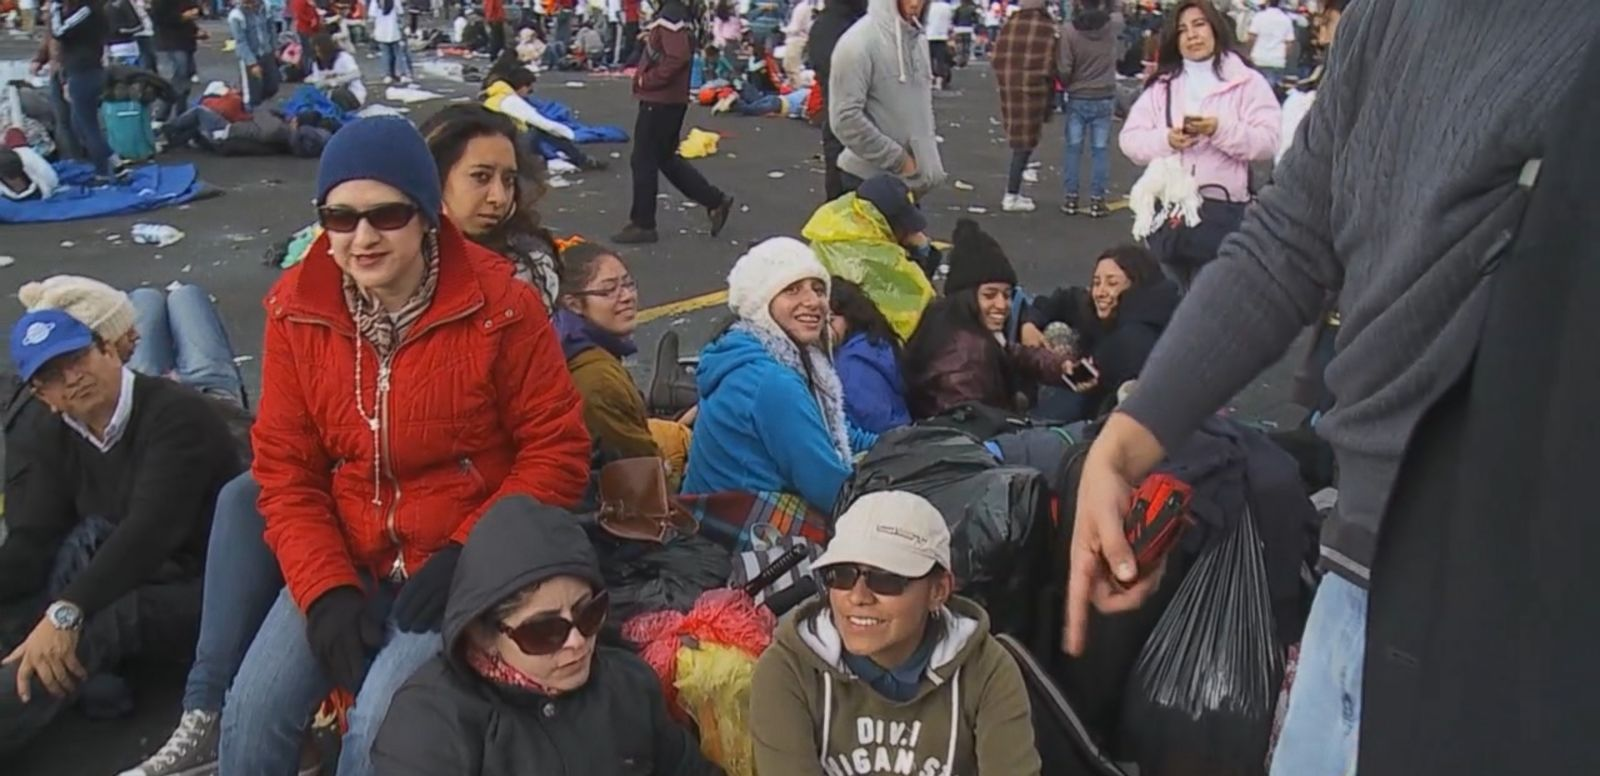 VIDEO: An estimated 1 million pilgrims gathered in Quito's Bicentennial Park, many sleeping overnight in pouring rain, to hear Pope Francis give mass during his trip to Latin America.